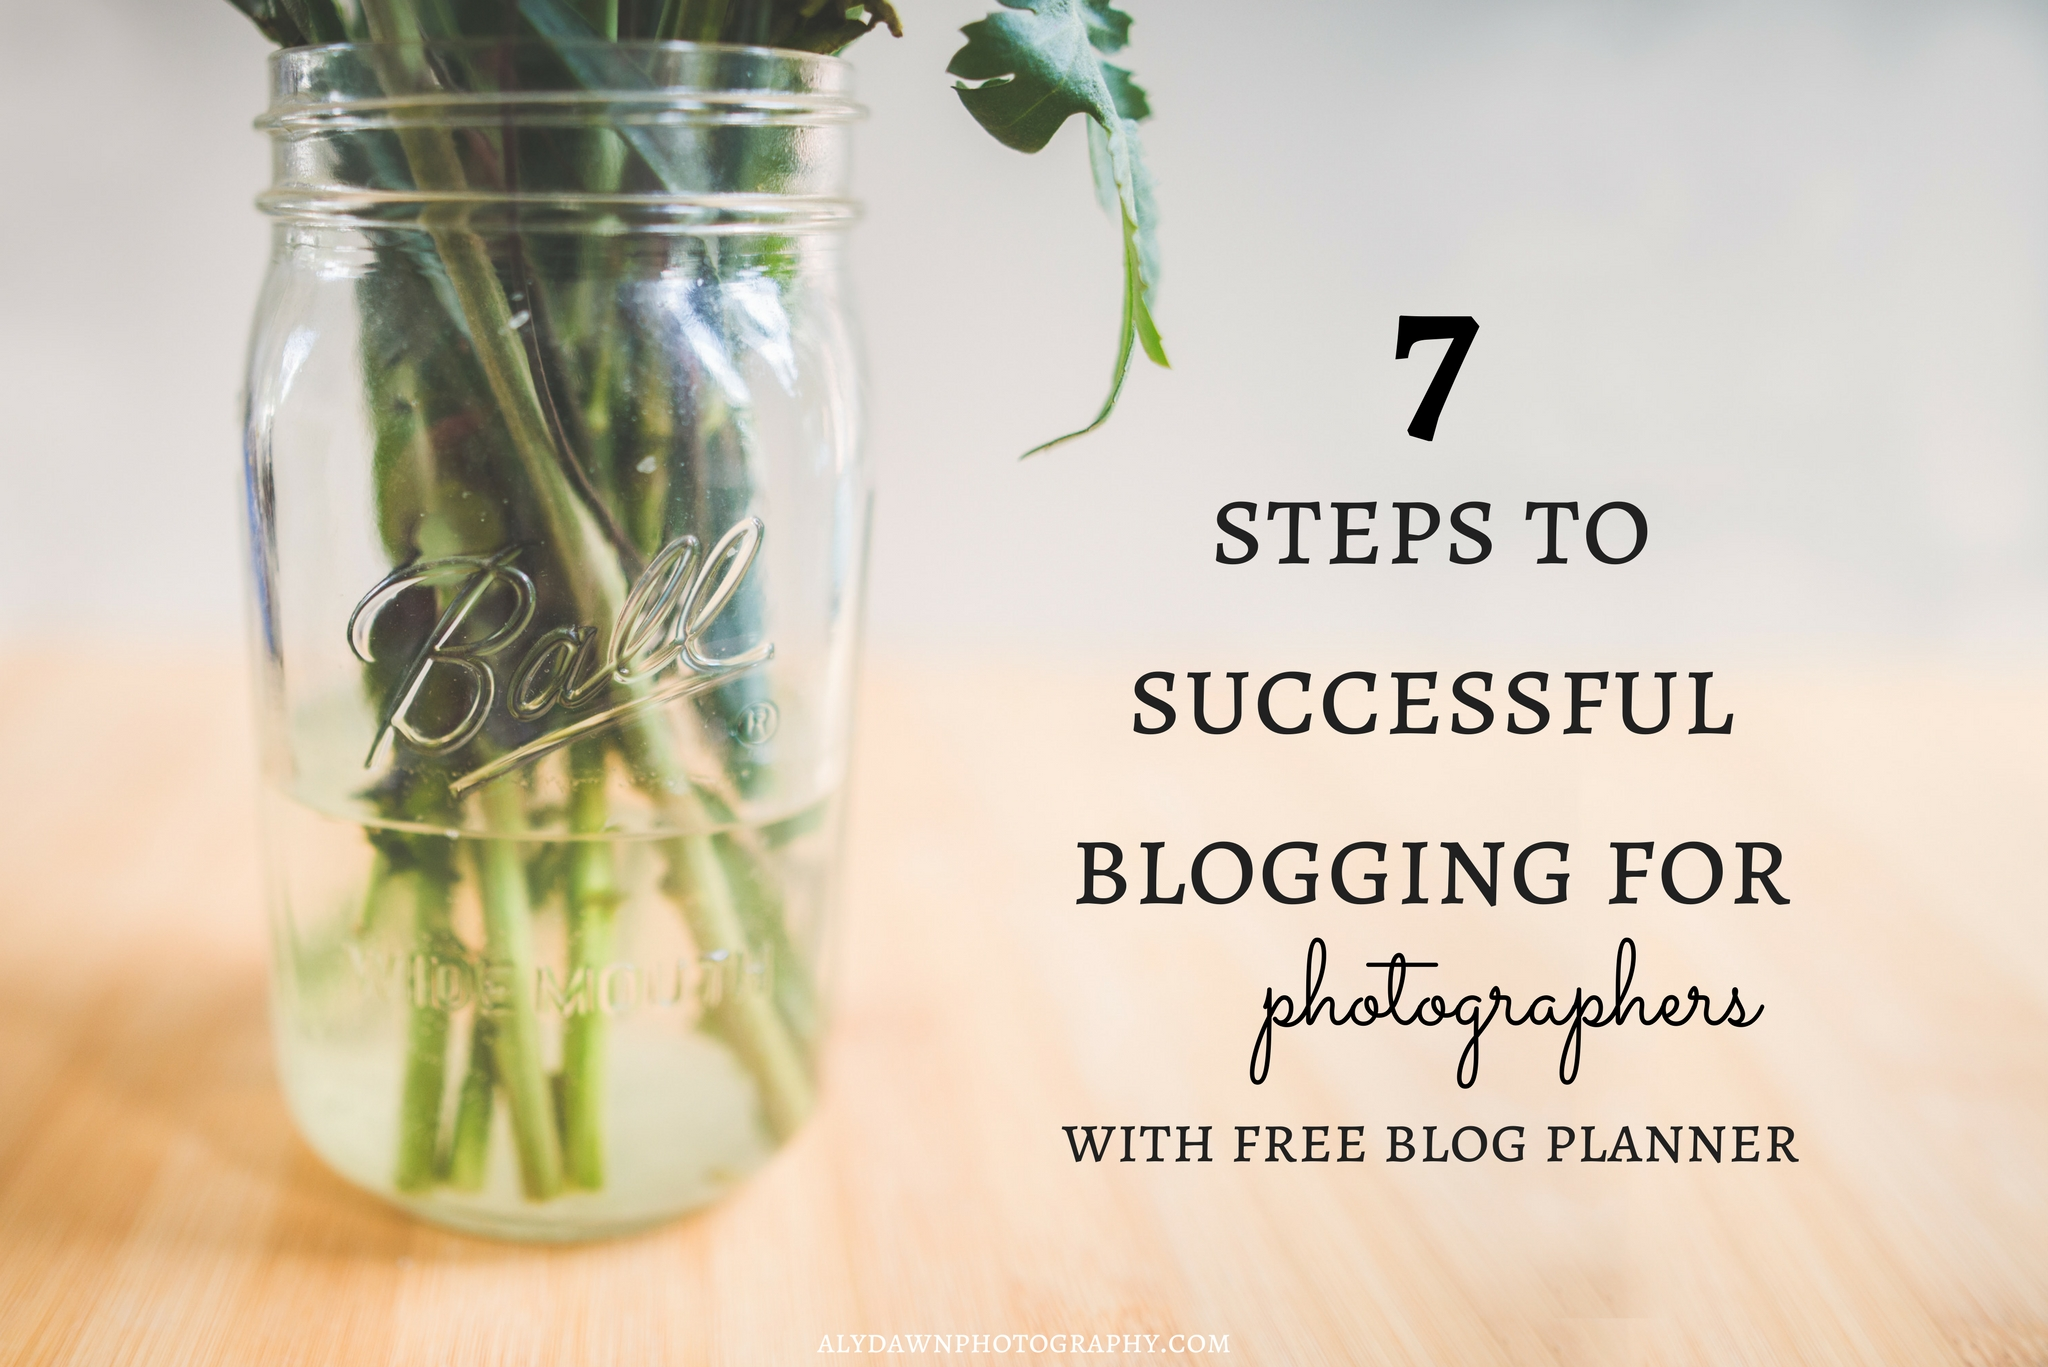 7 Steps to Successful Blogging for Photographers